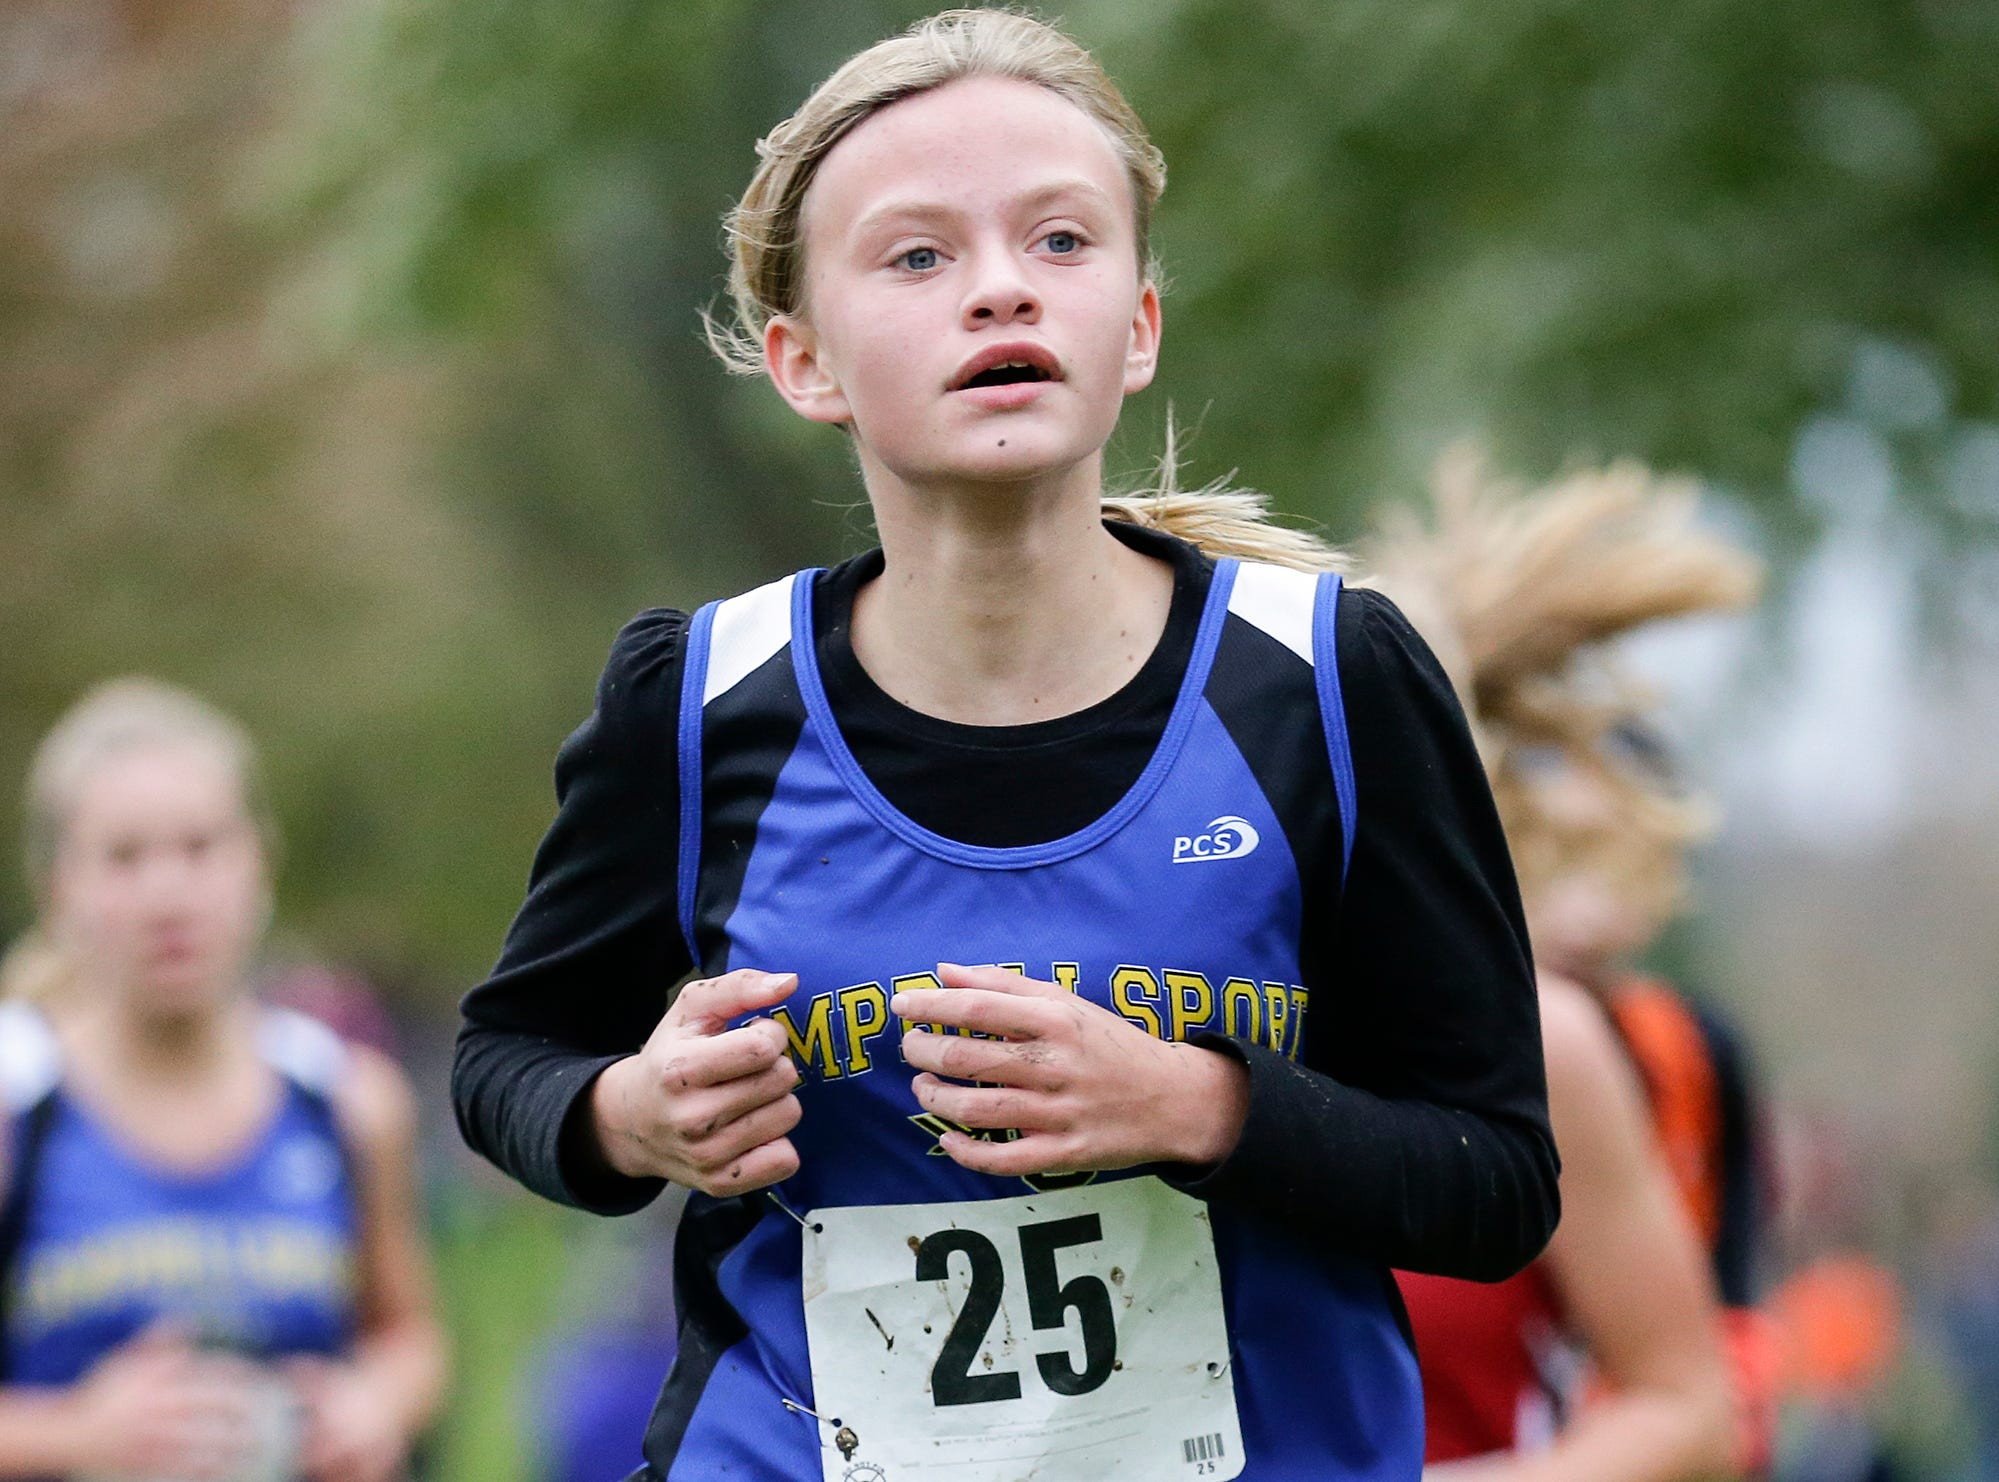 Campbellsport High School's Macy Pawlowski runs in the WIAA Division two Mayville sectional cross country meet at the Mayville golf course Friday, October 19, 2018. Doug Raflik/USA TODAY NETWORK-Wisconsin